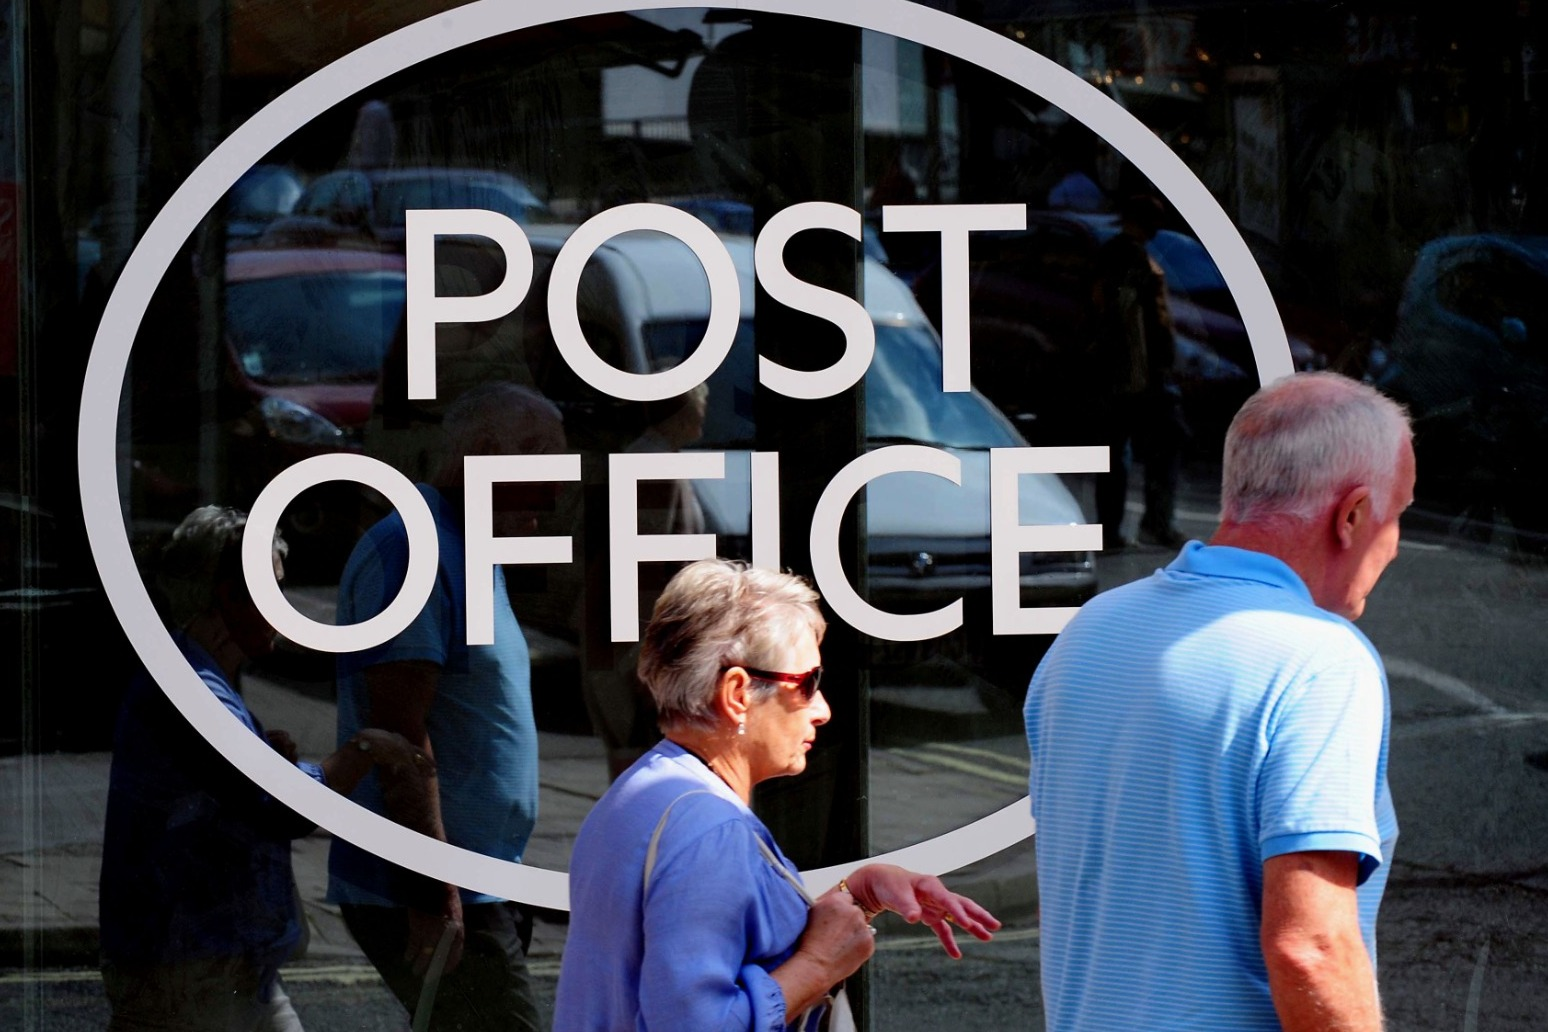 Banks should be required to ensure customers can access cash, says Post Office.